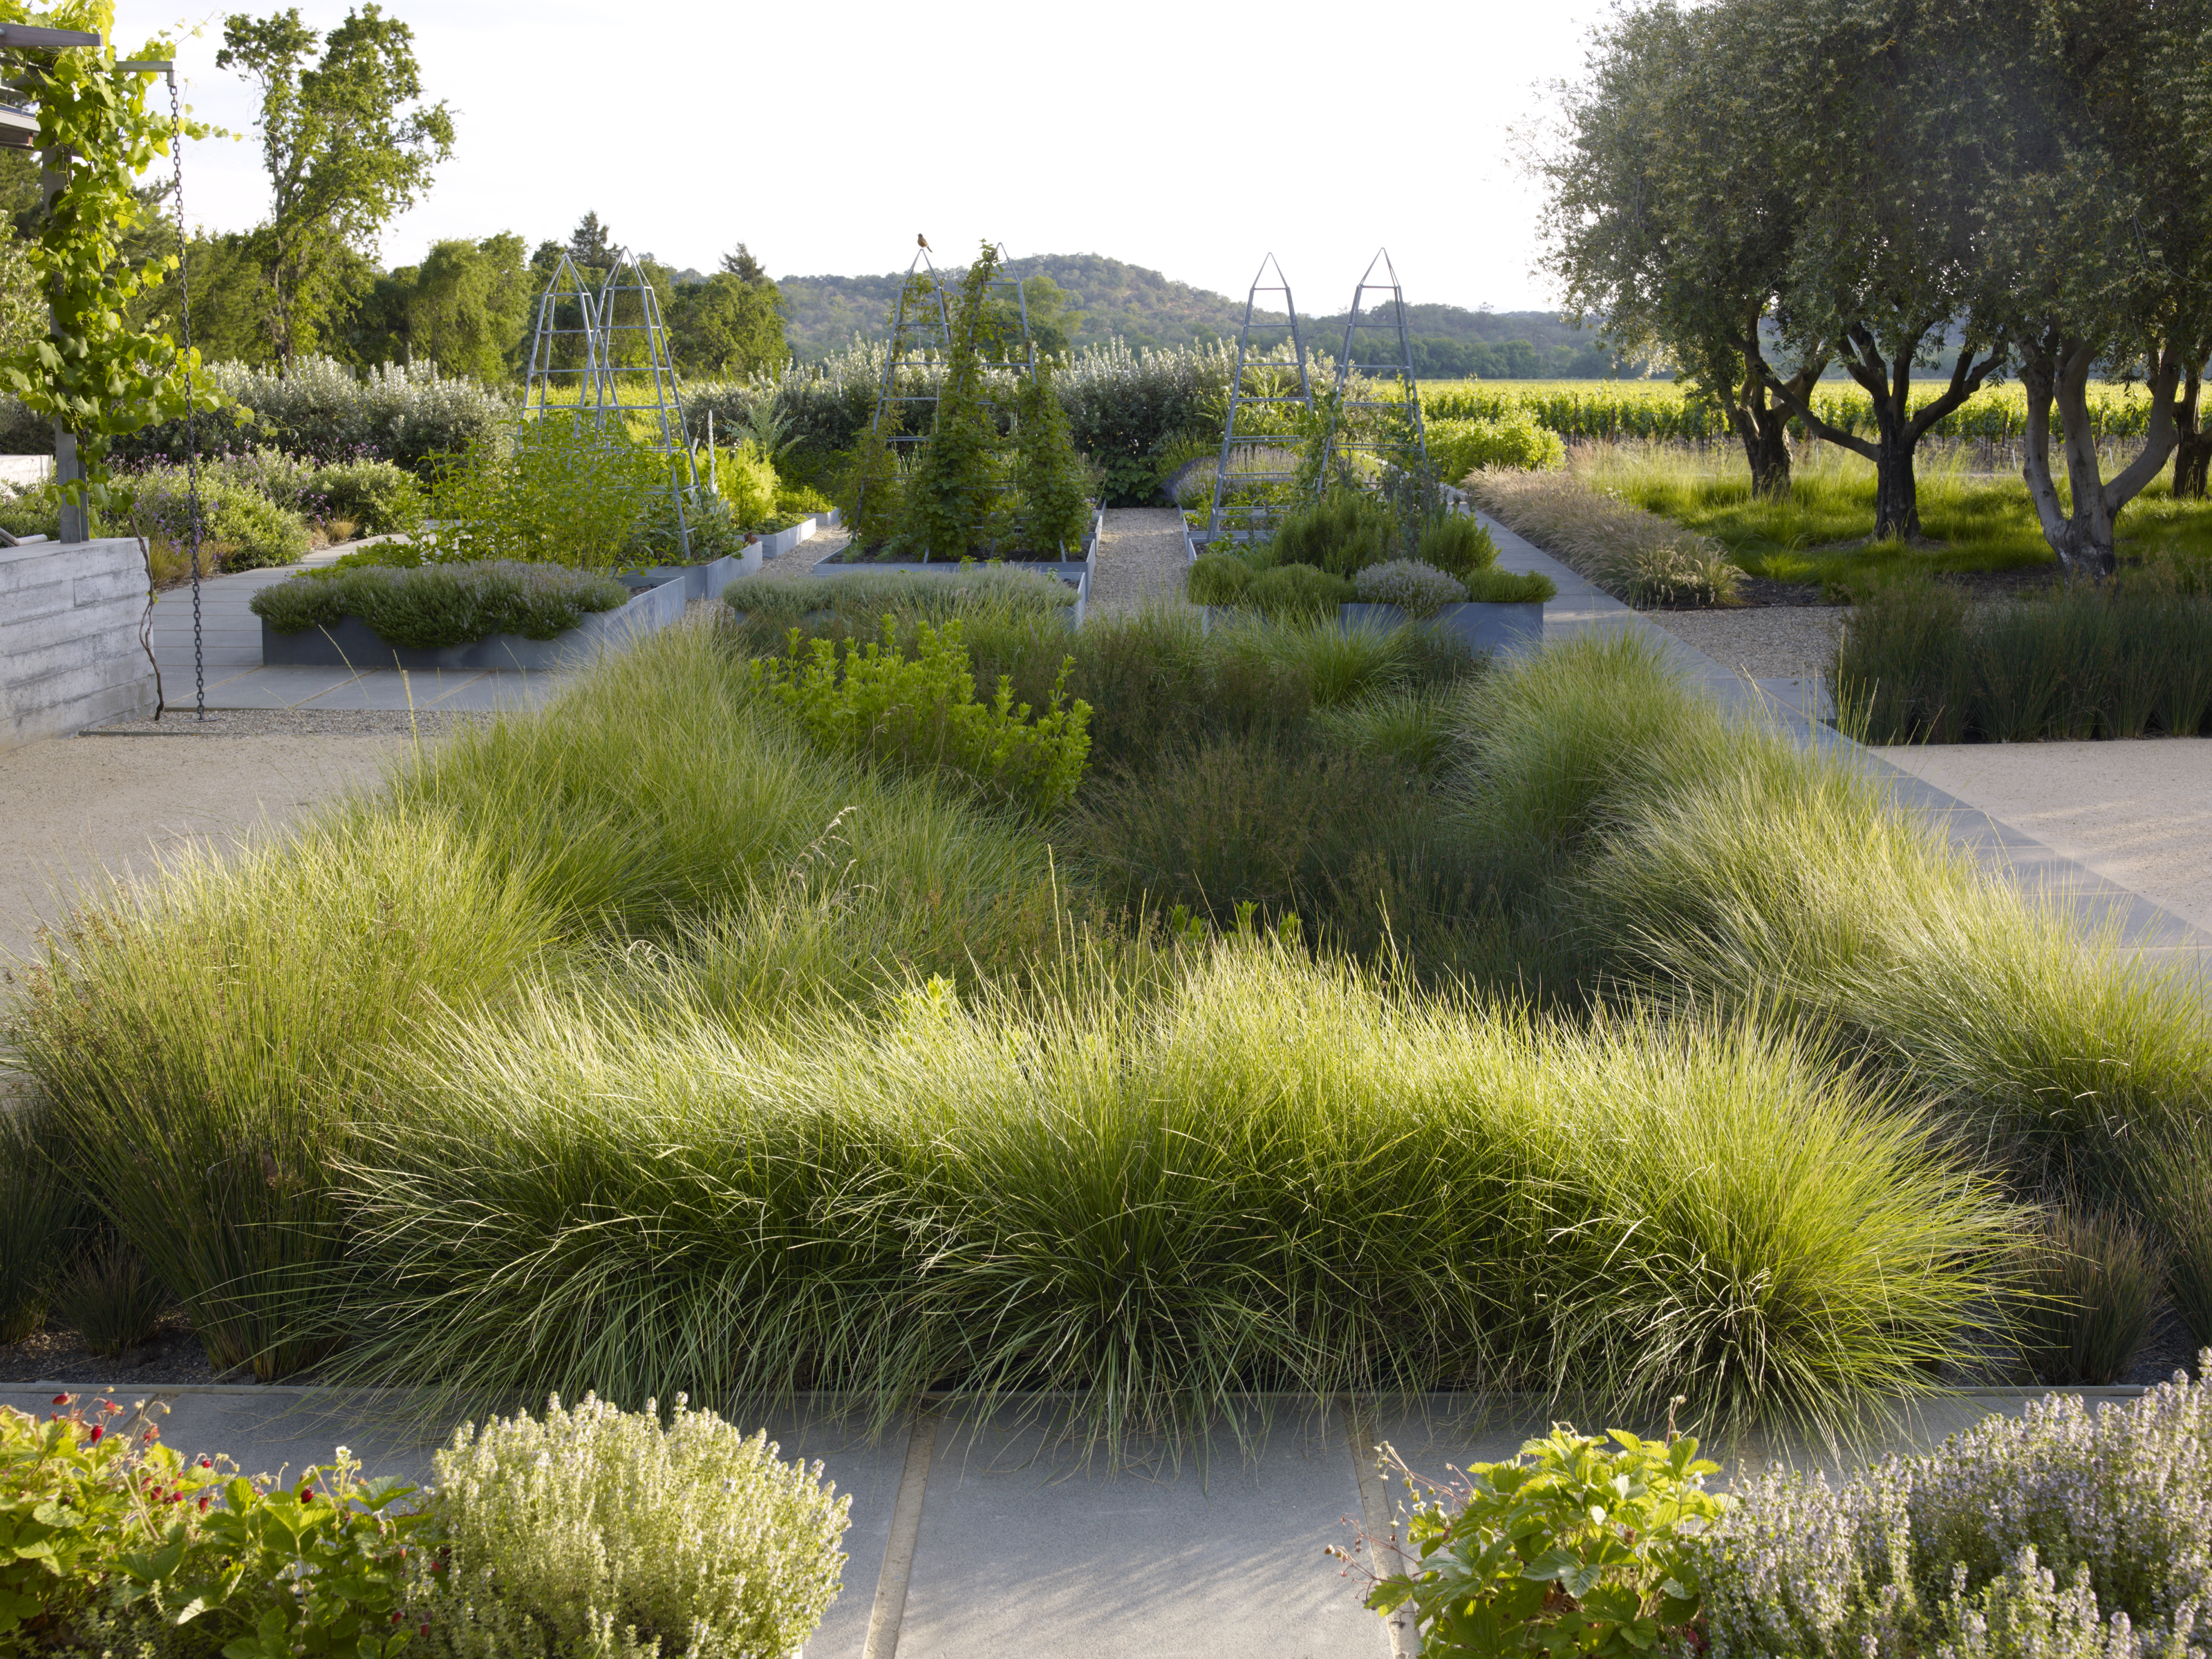 Small vegetable garden plans ideas - Asla 2013 Professional Awards Medlock Ames Tasting Room And